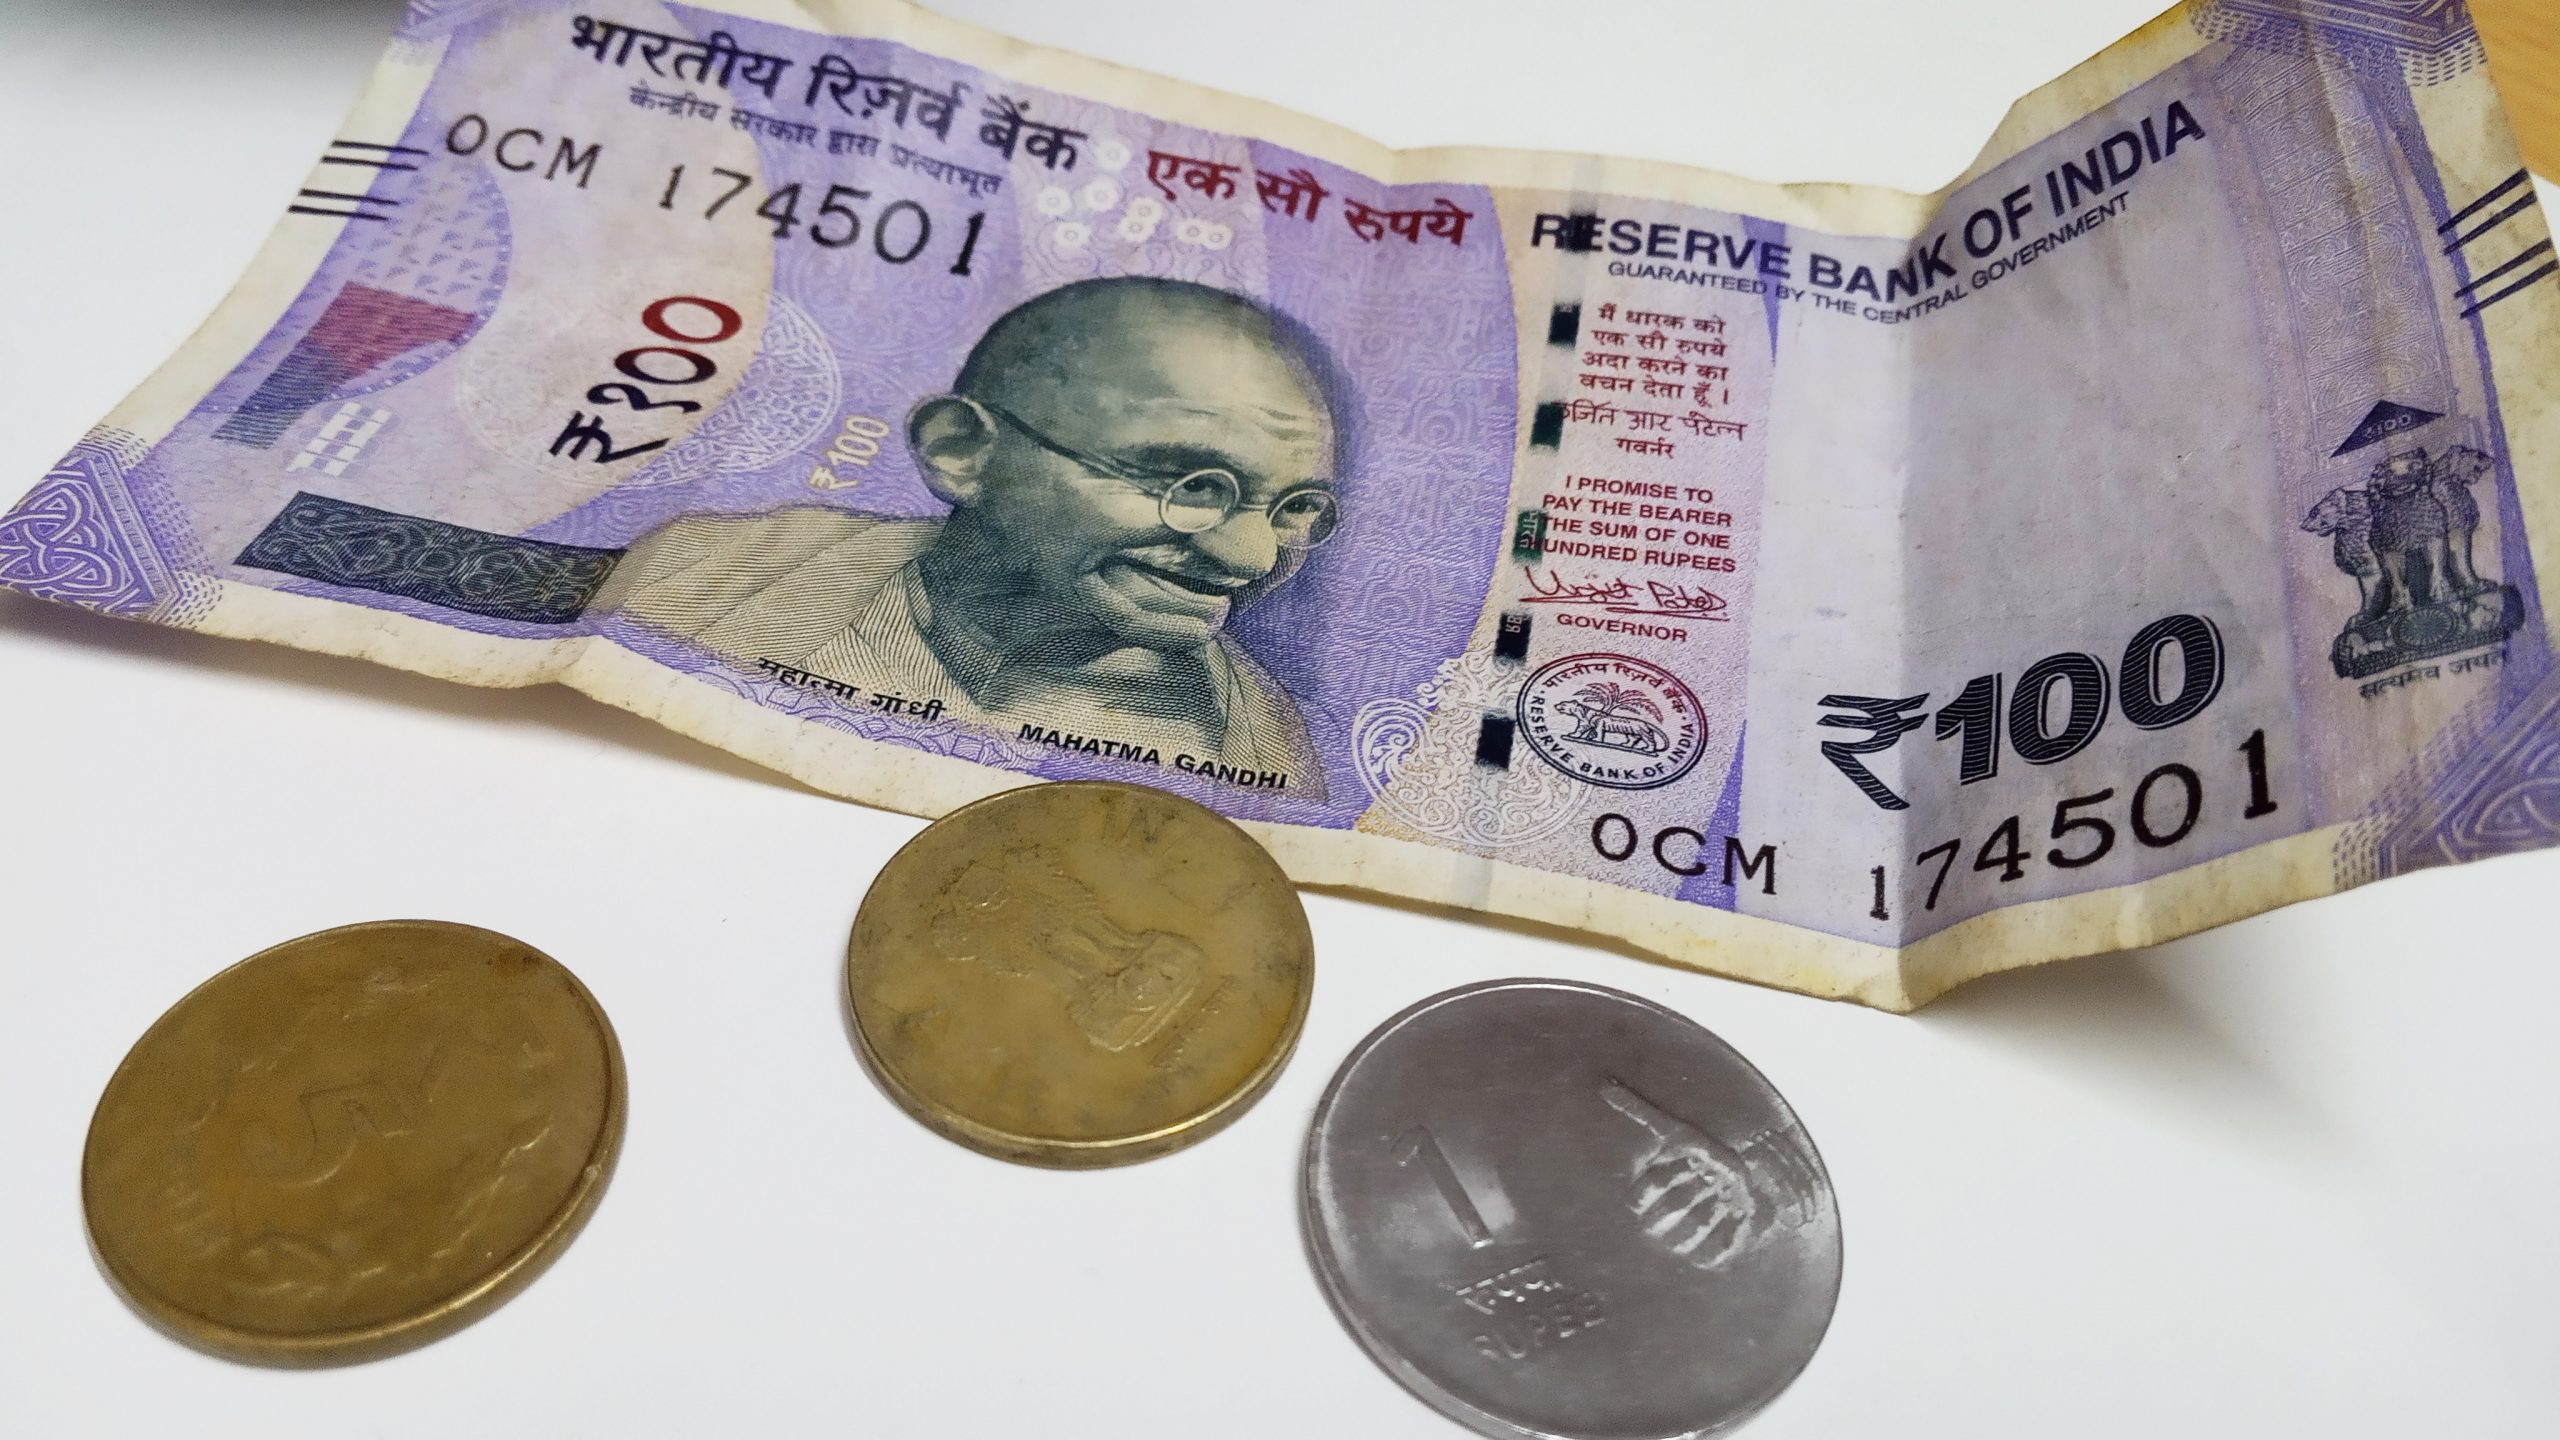 Indian coins and currency note